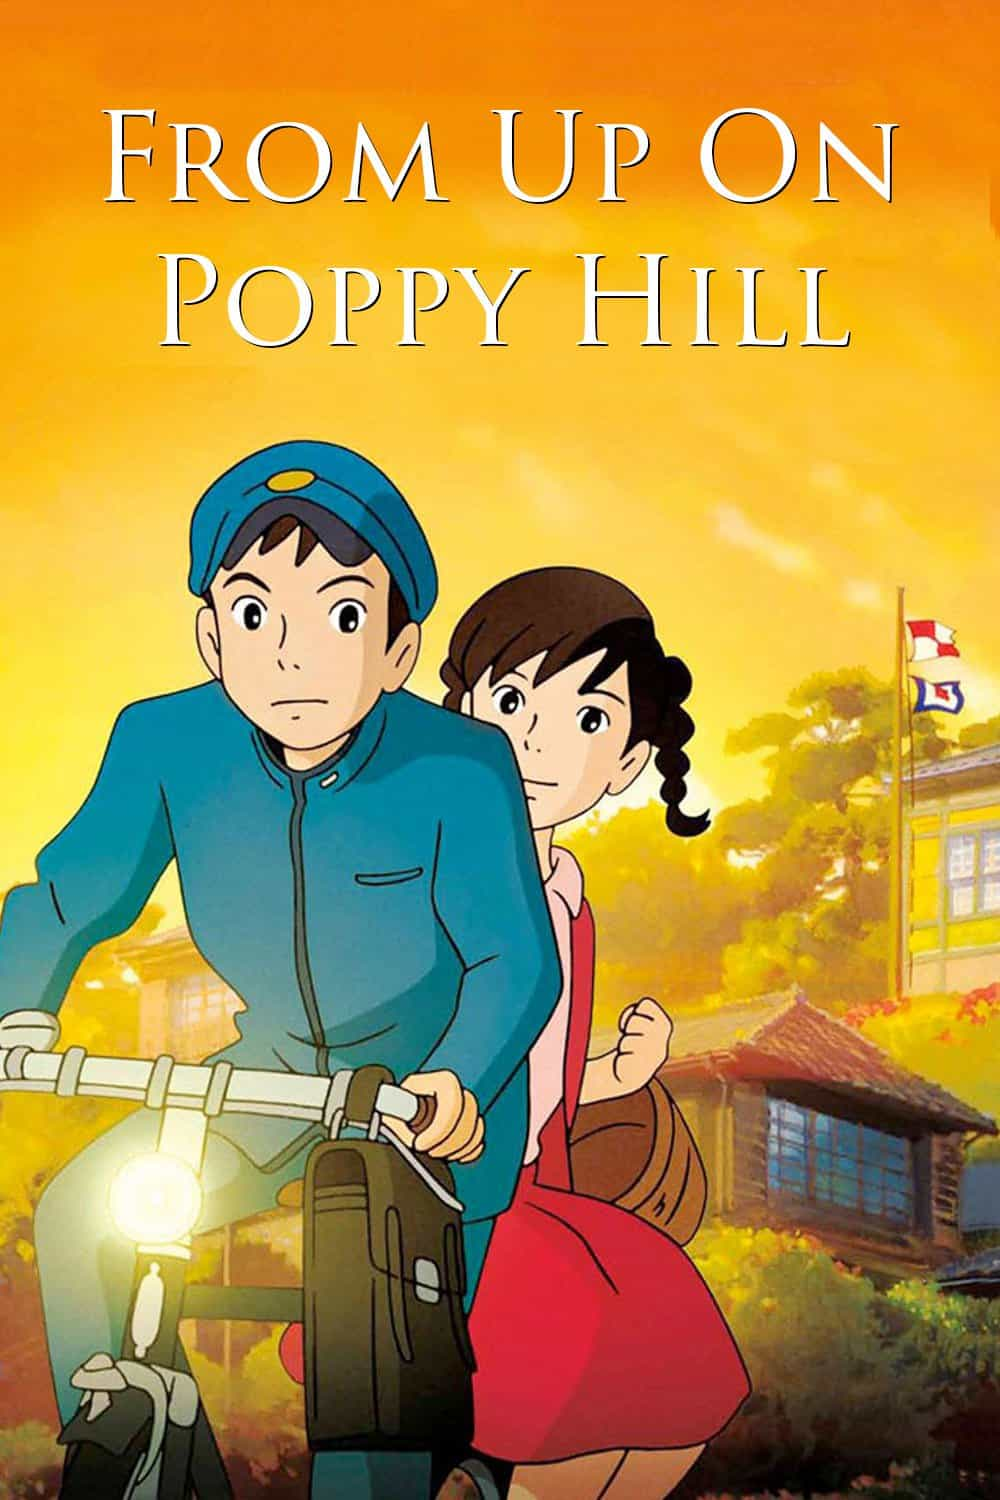 From Up on Poppy Hill, 2011